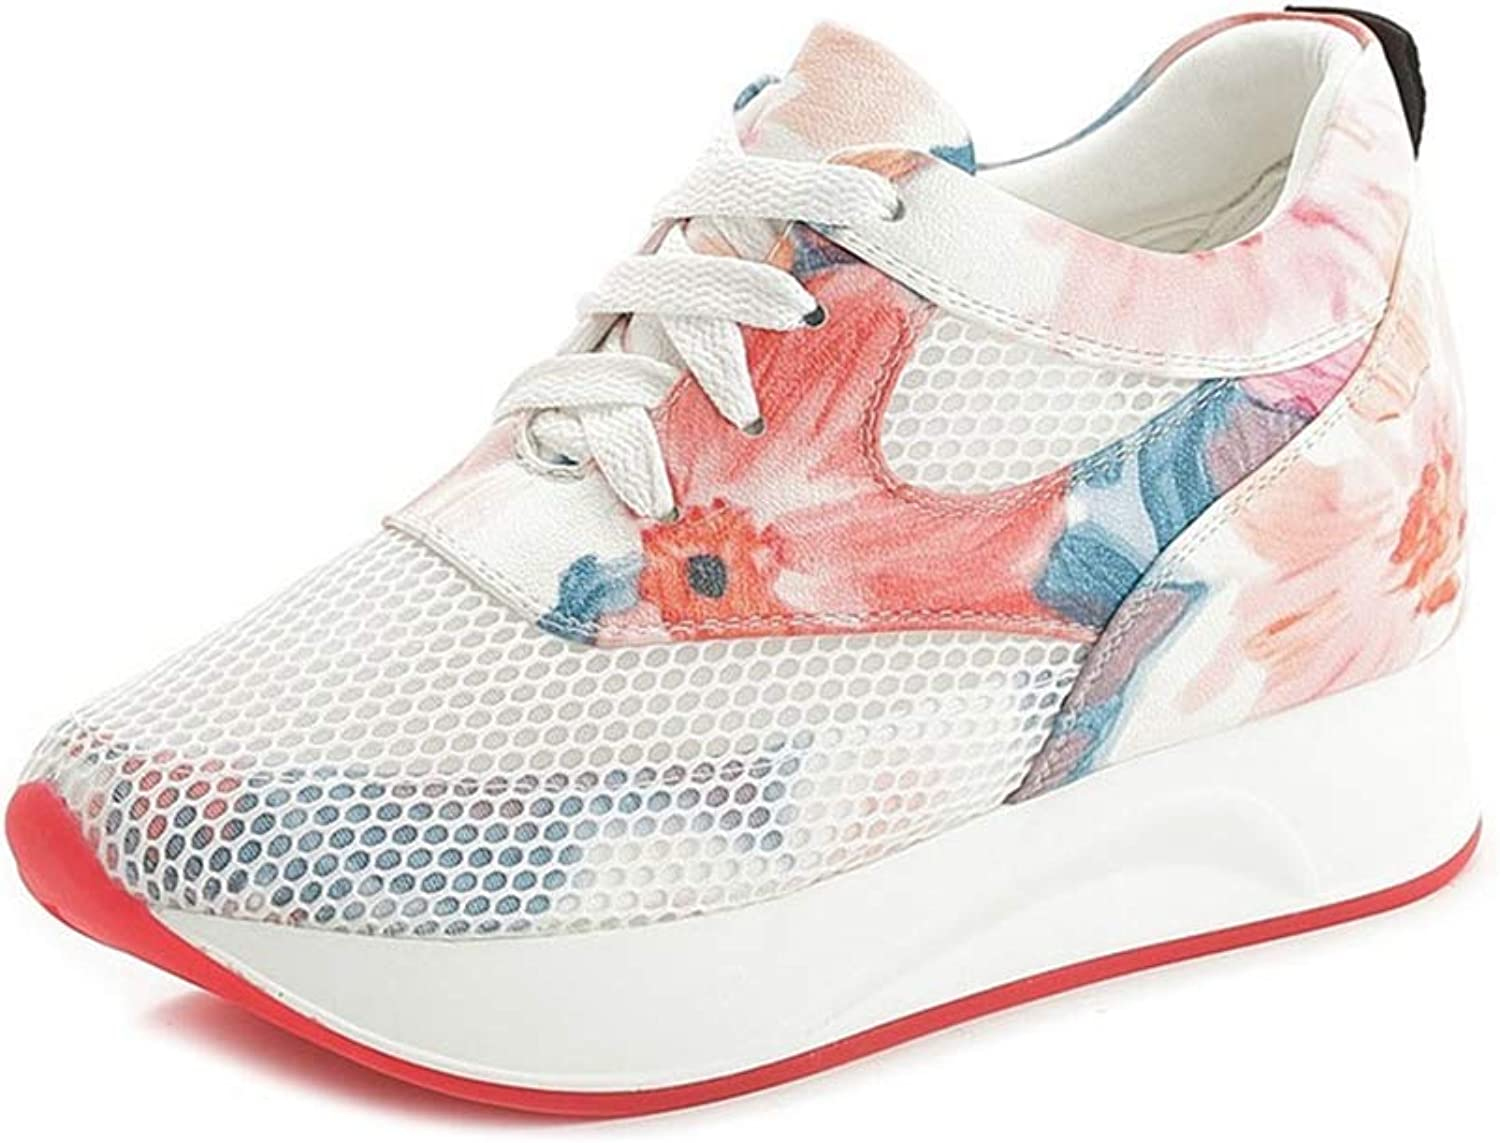 Beautiful - Fashion Womens Wedge Sneakers Casual Soft Outsole Height Increasing Camouflage Floral Lace Up Sports Athletic shoes